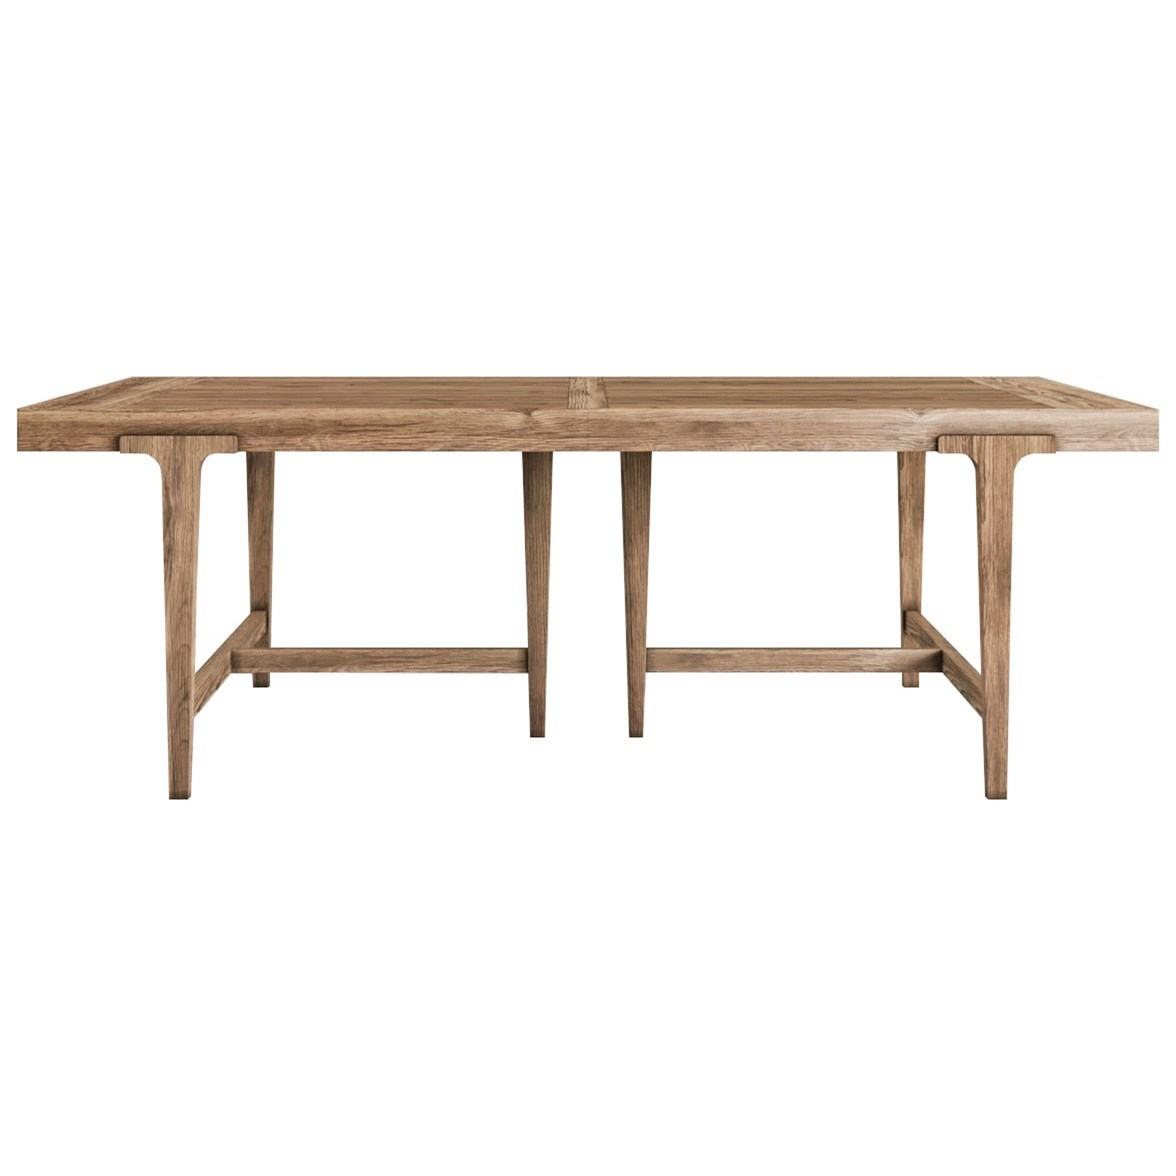 Passage Rectangular Dining Table by A.R.T. Furniture Inc at C. S. Wo & Sons California